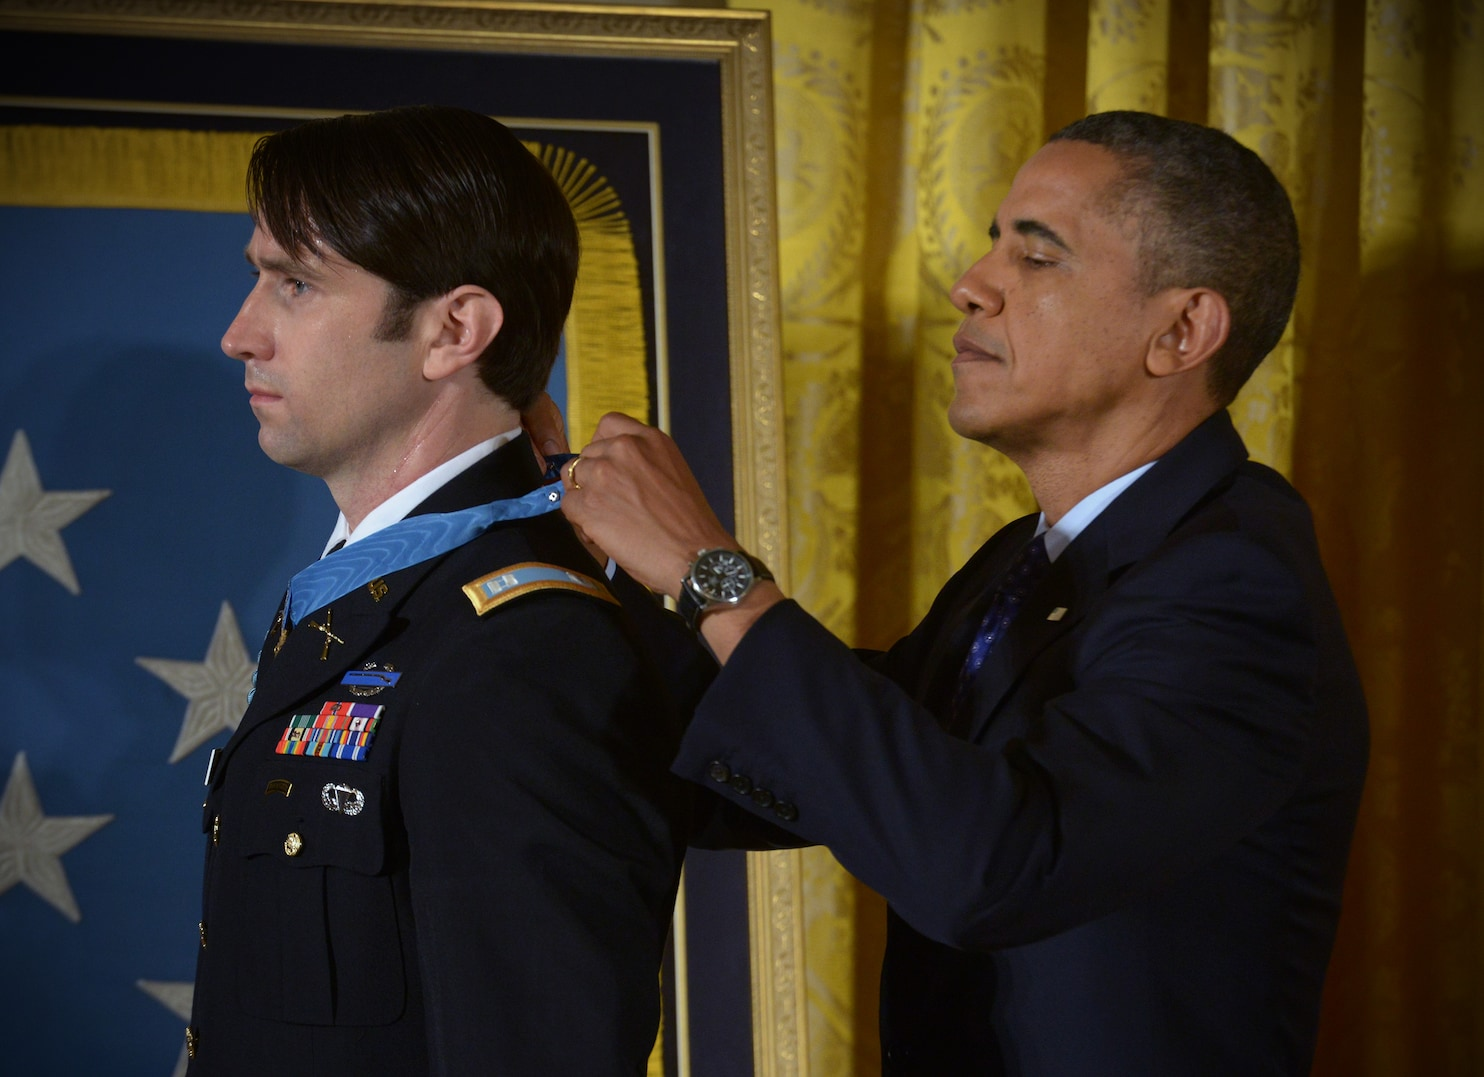 Will Honor Swenson Medal